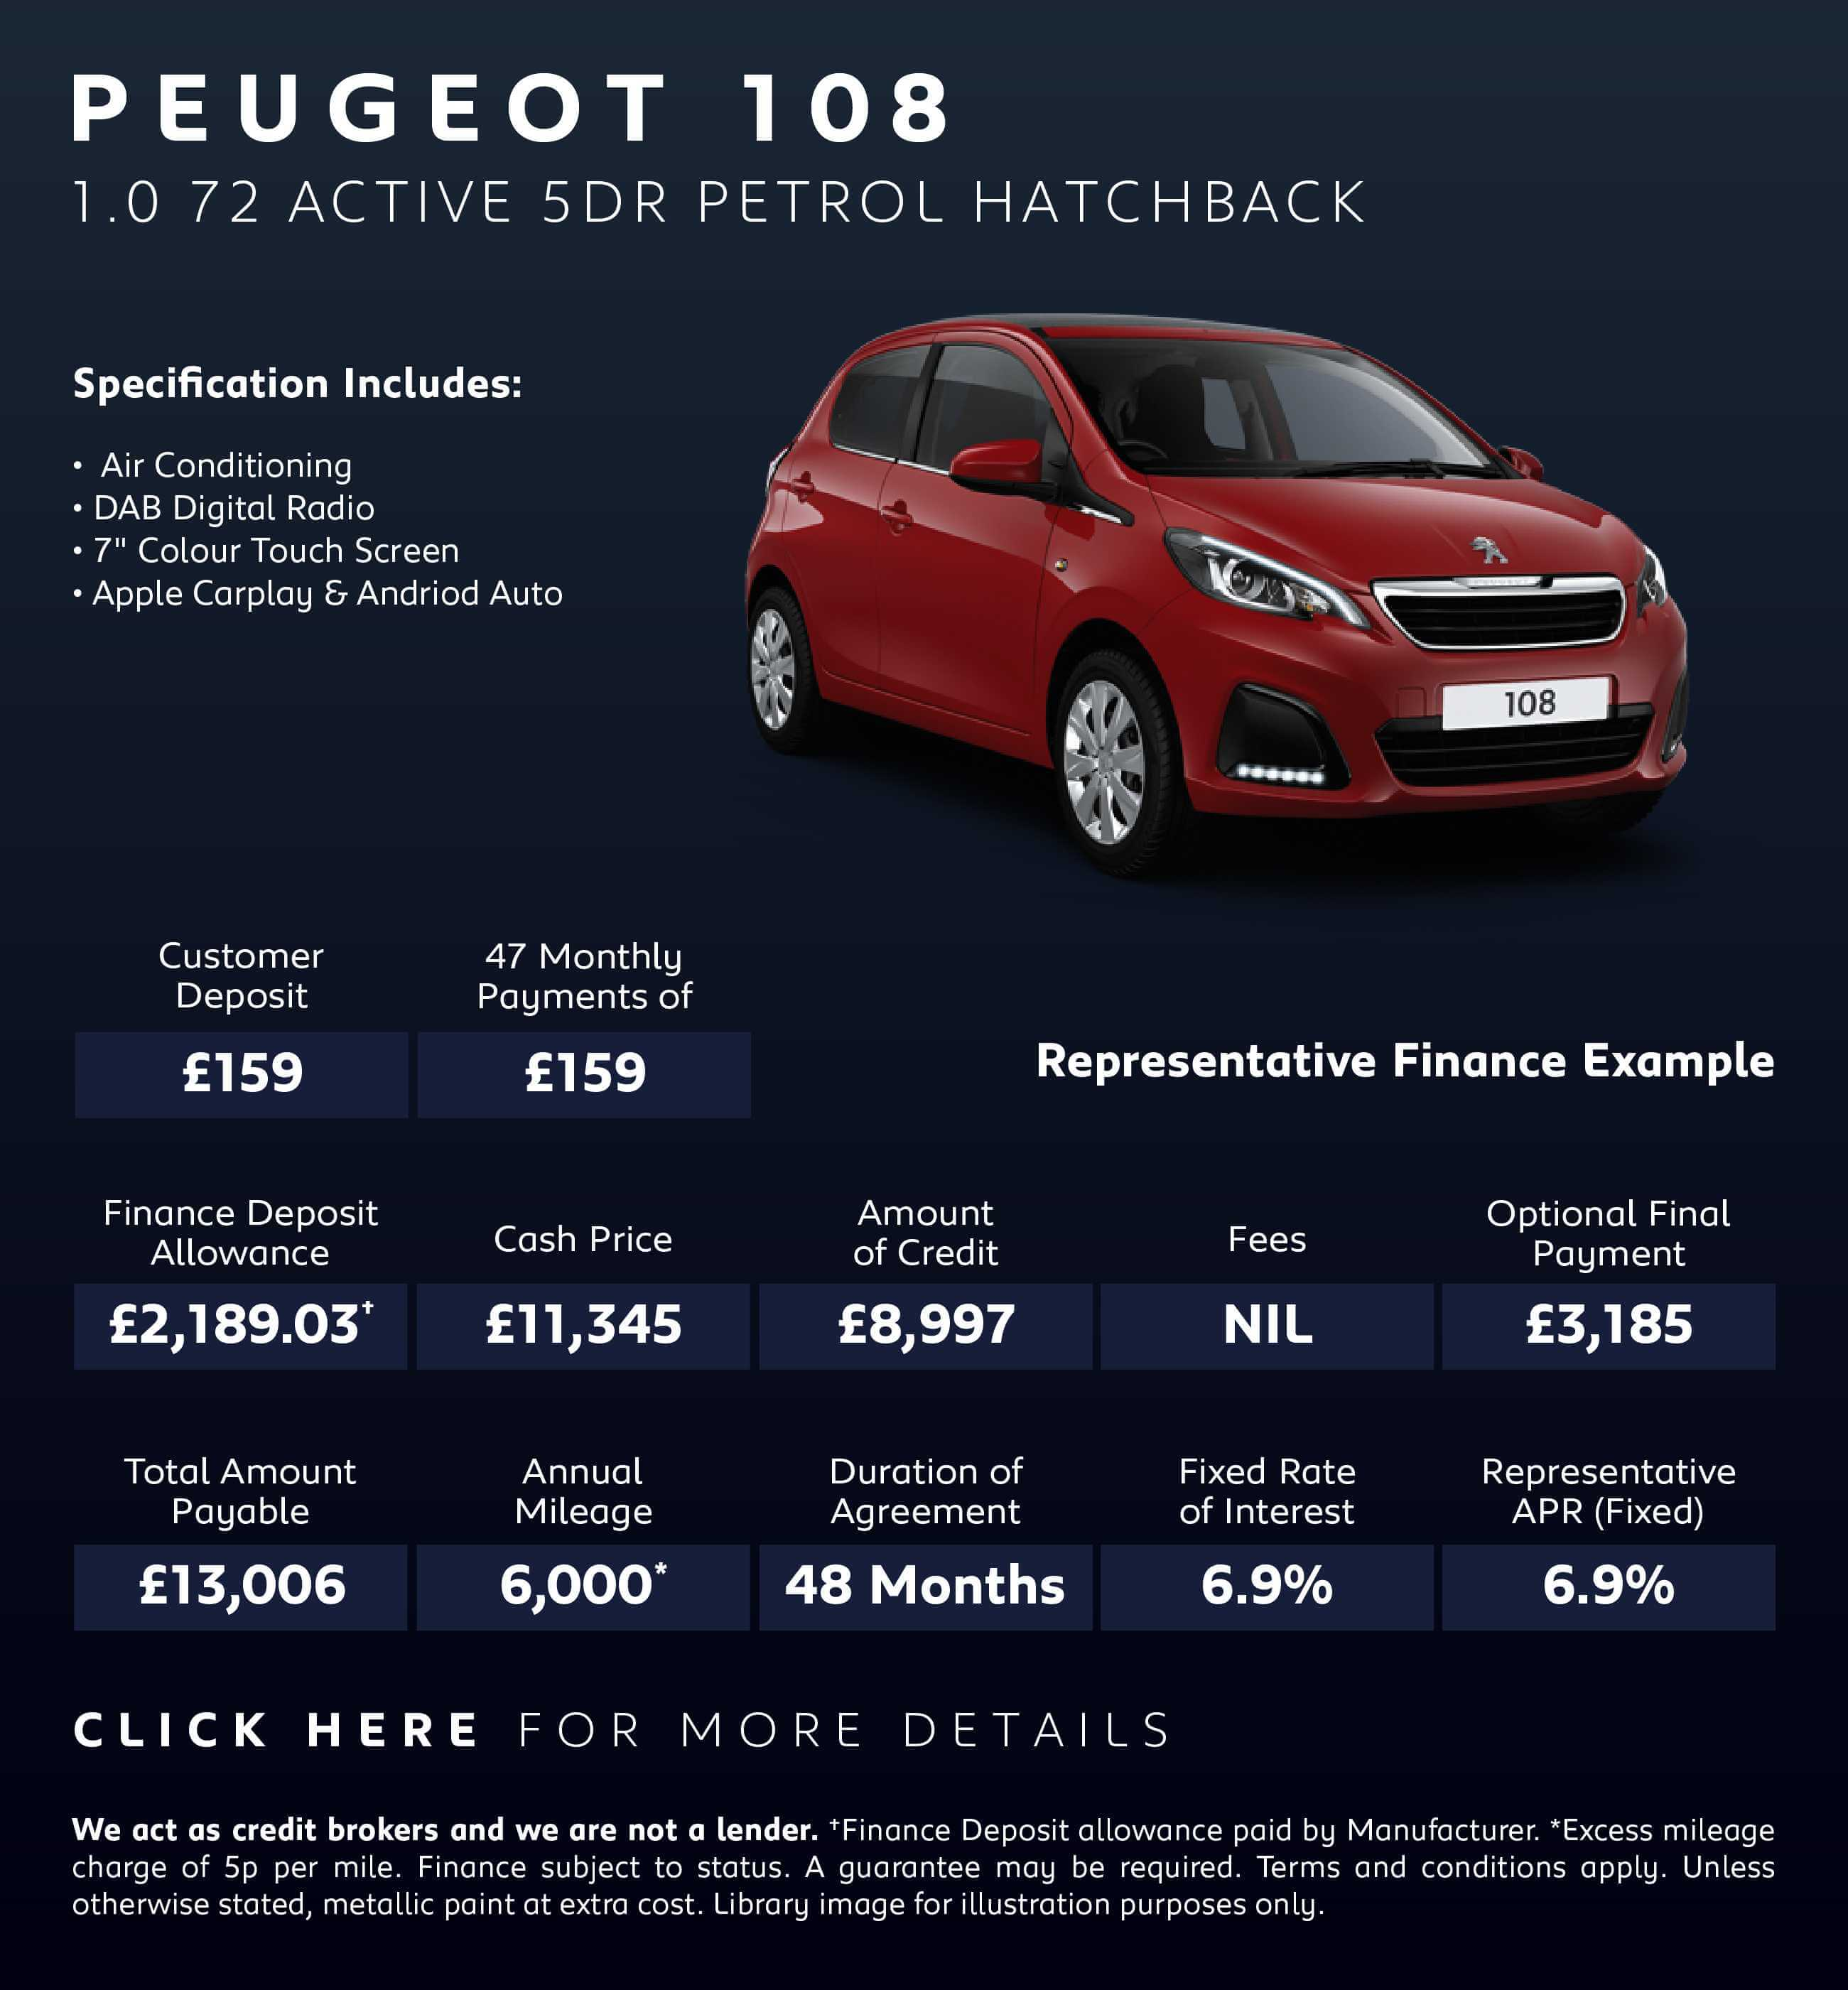 Peugeot Dealers In Harlow